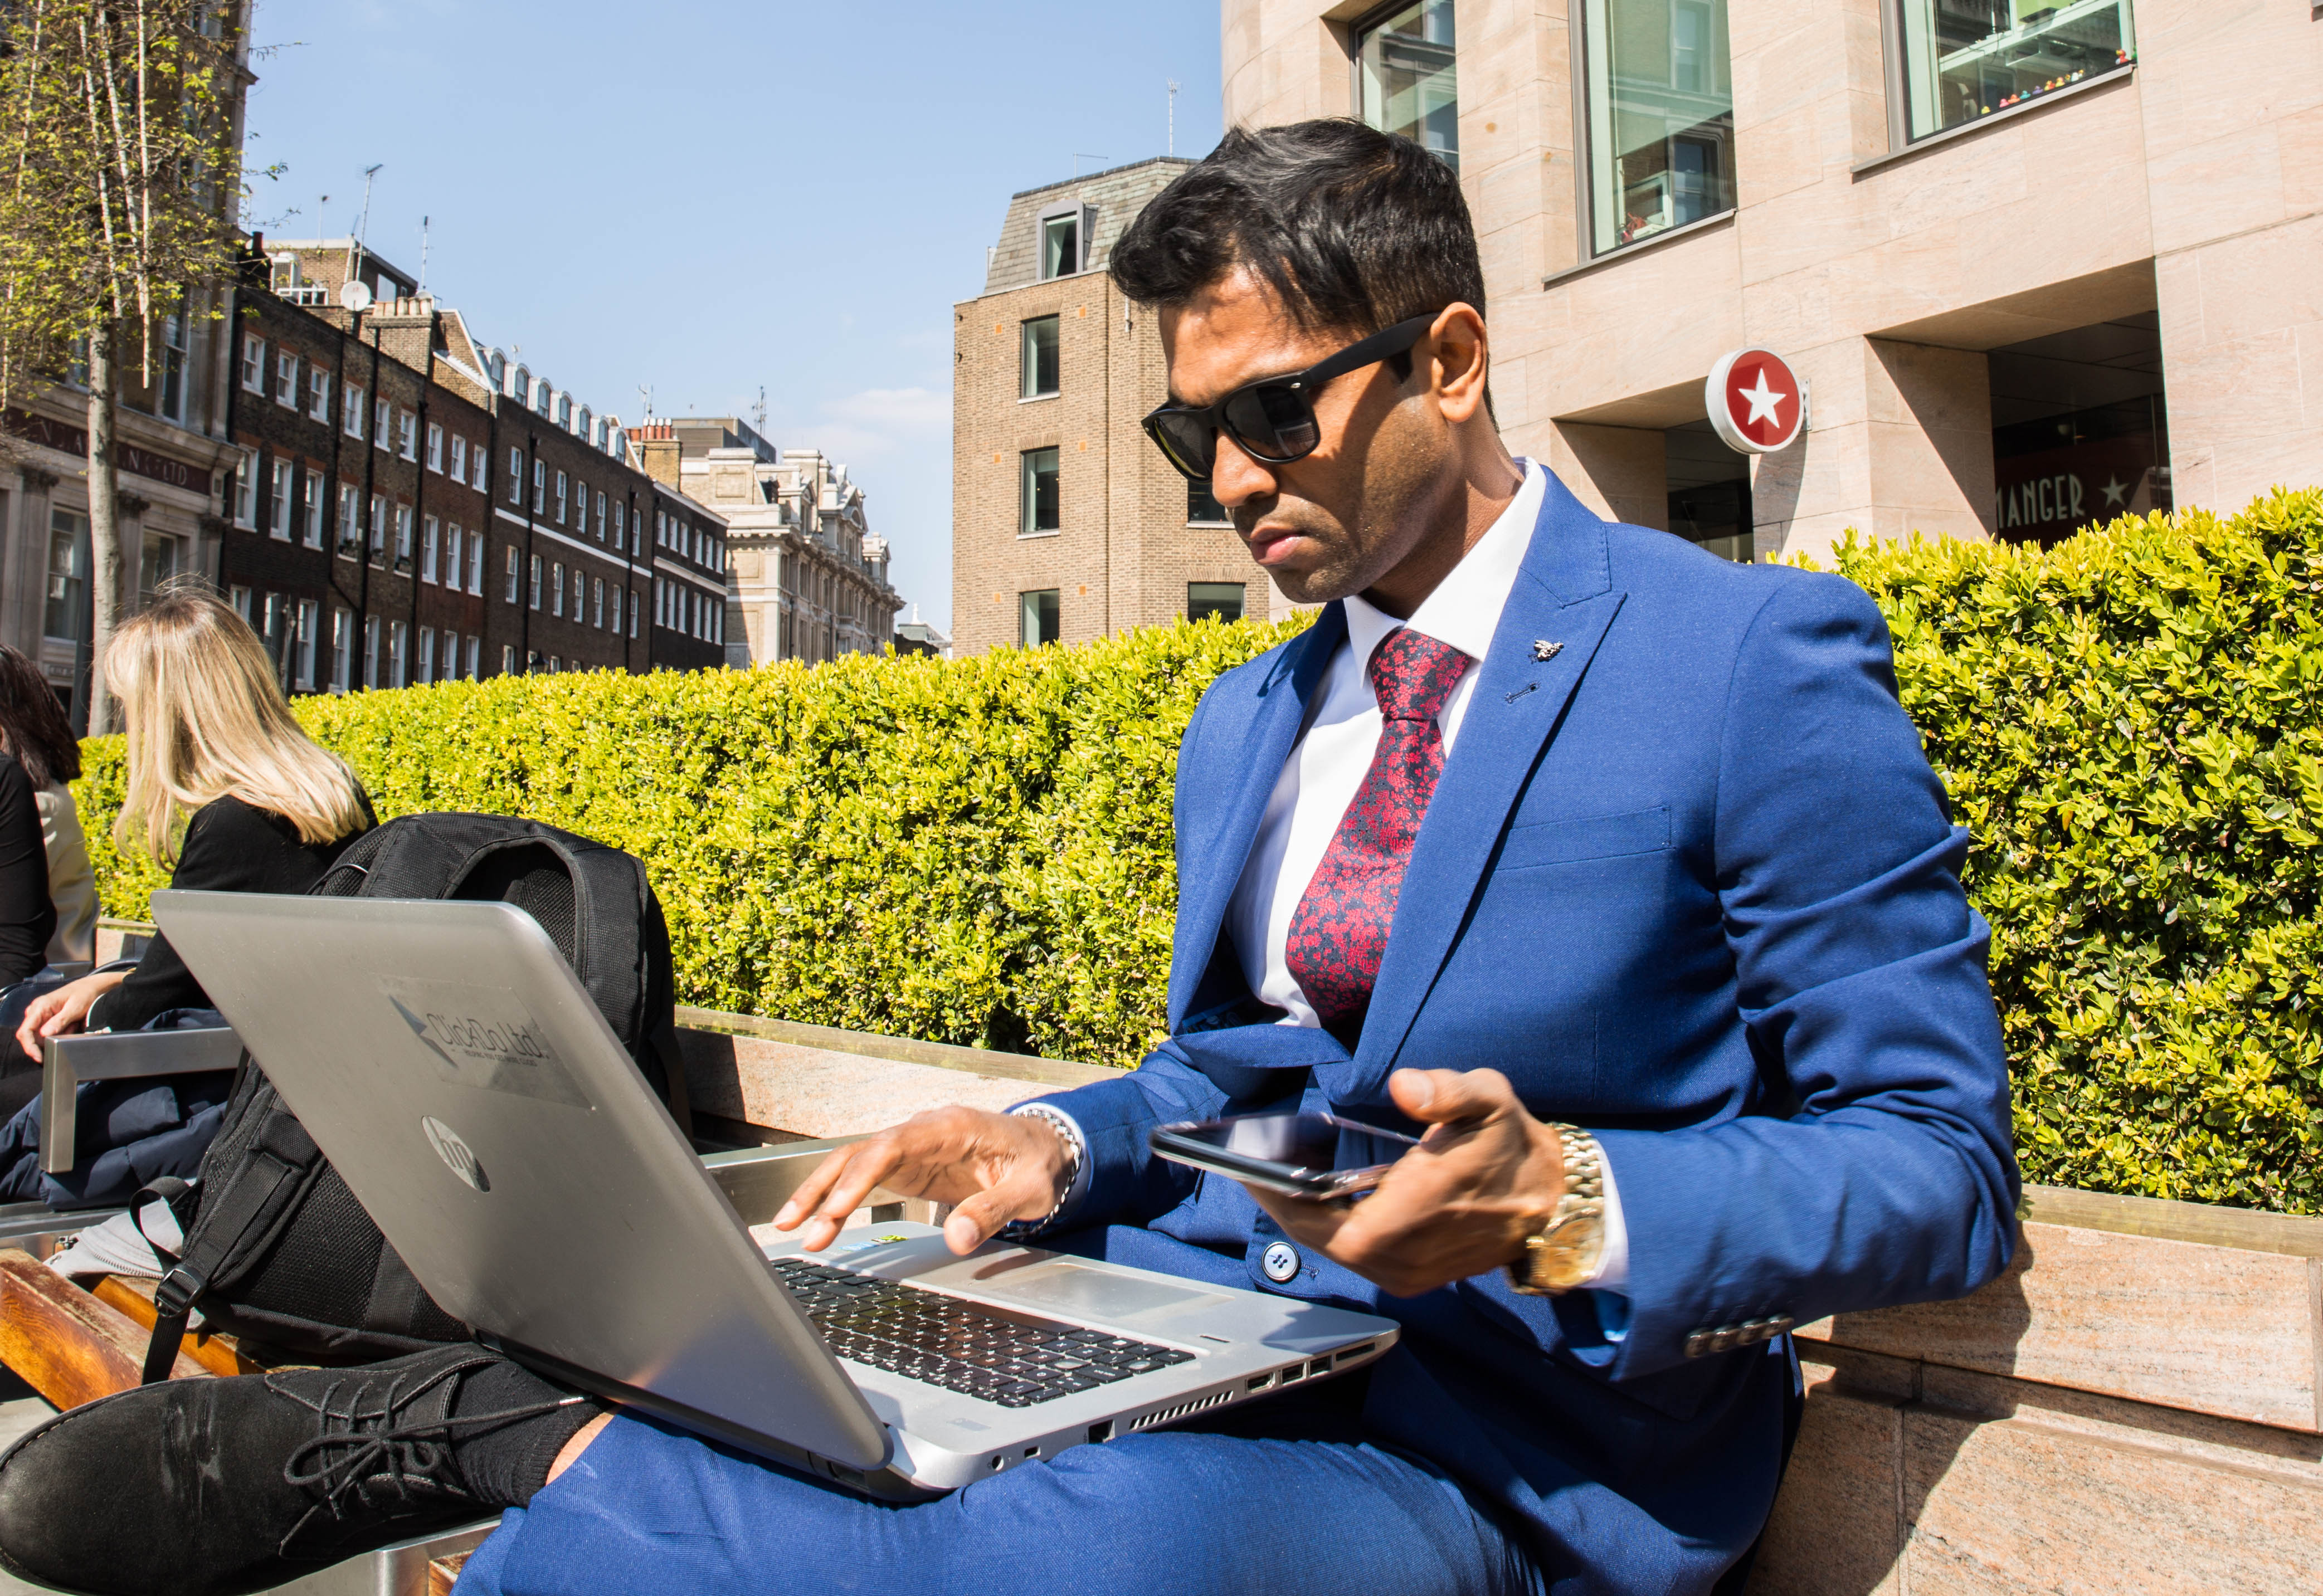 Fernando-the-London-SEO-Consultant-working-remotely-doing-SEO-work-online